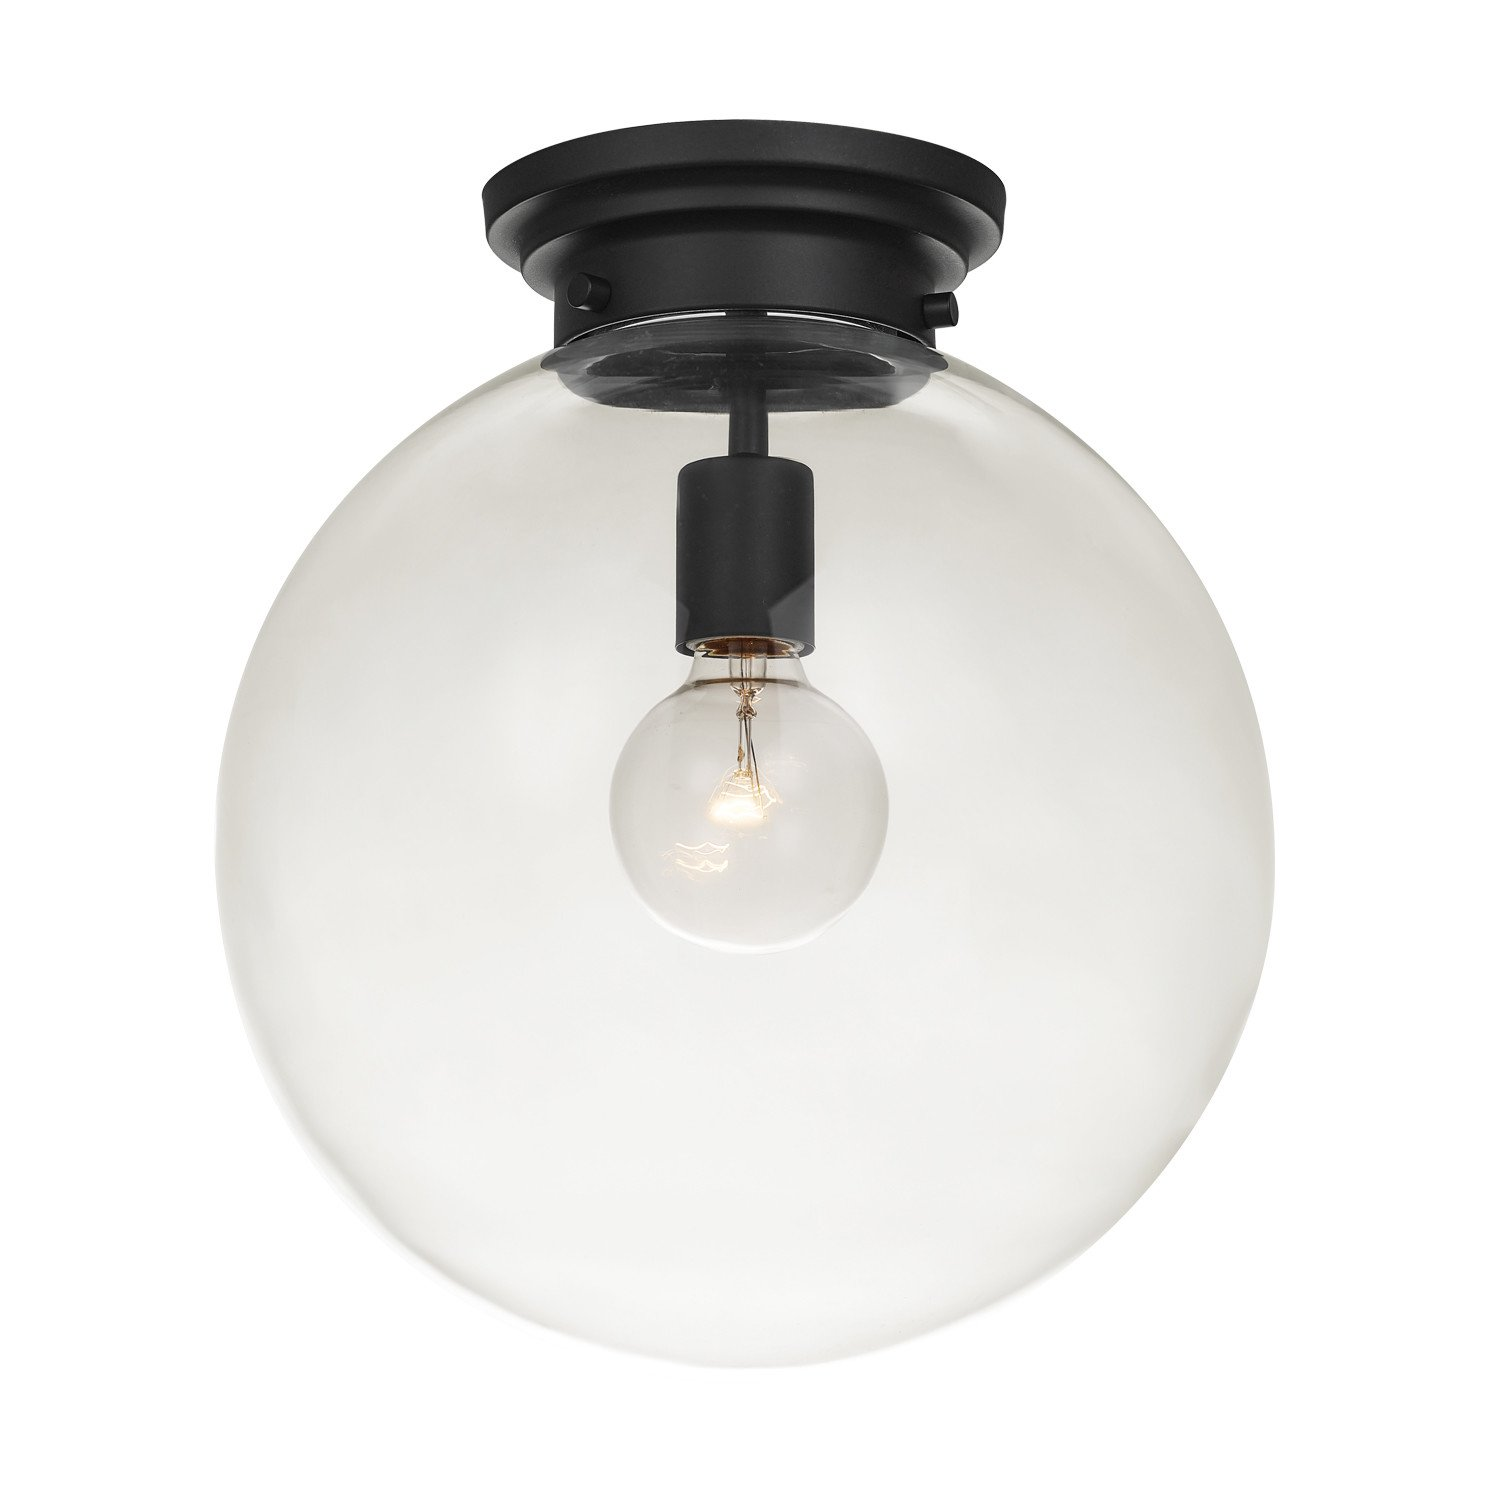 Amazon com globe electric 65954 portland light semi flush mount black with clear glass shade home improvement